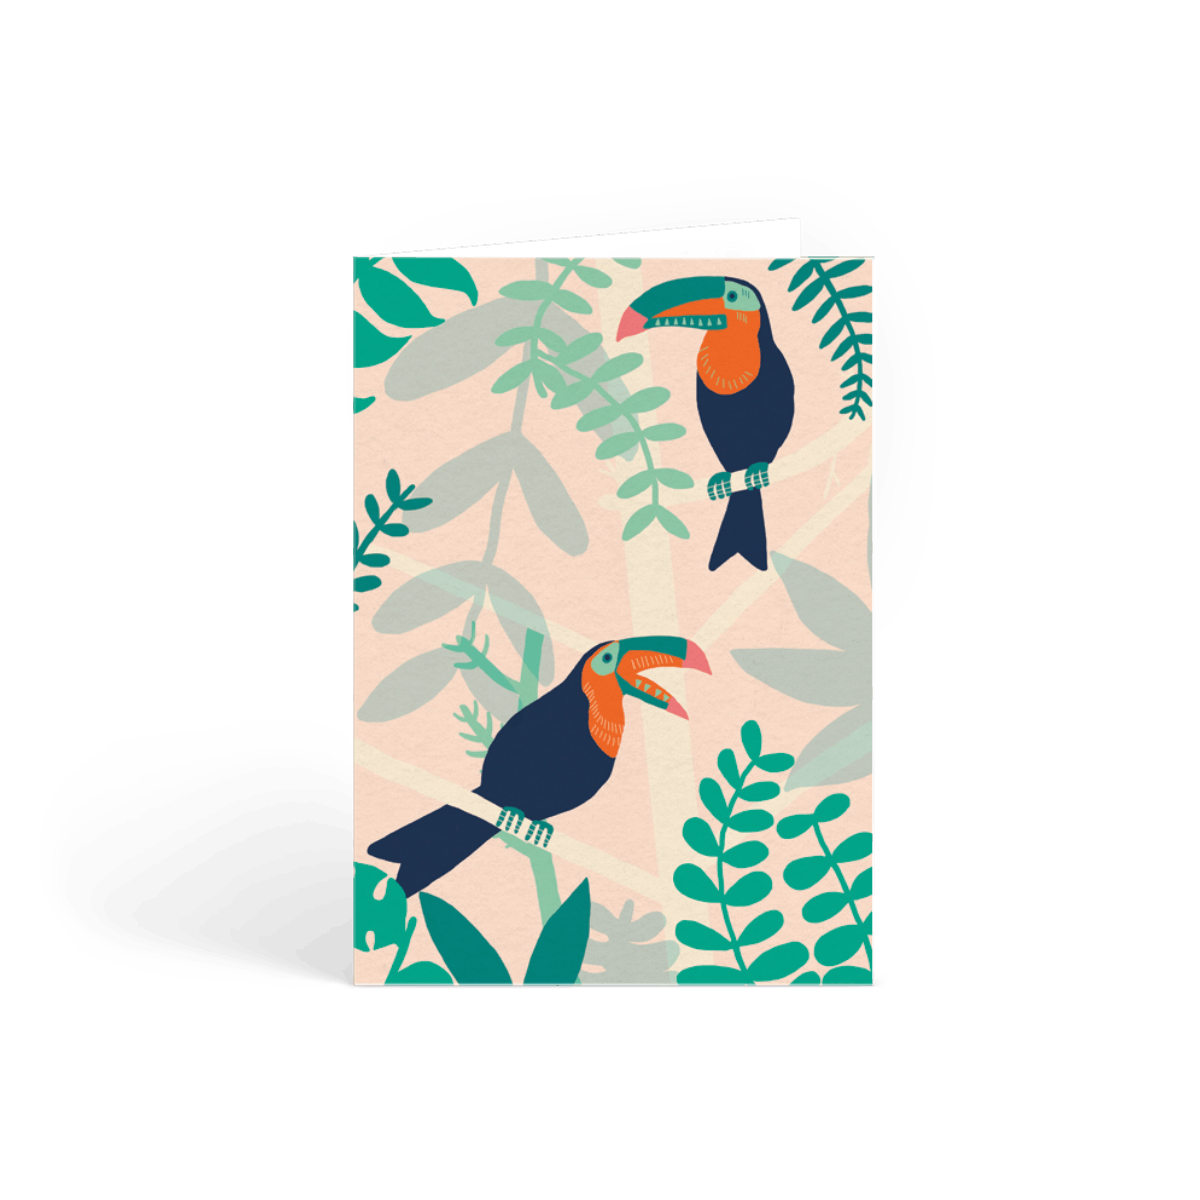 Https%3a%2f%2fwww.papier.com%2fproduct image%2f9484%2f2%2ftoucans 2392 front 1469442078.png?ixlib=rb 1.1